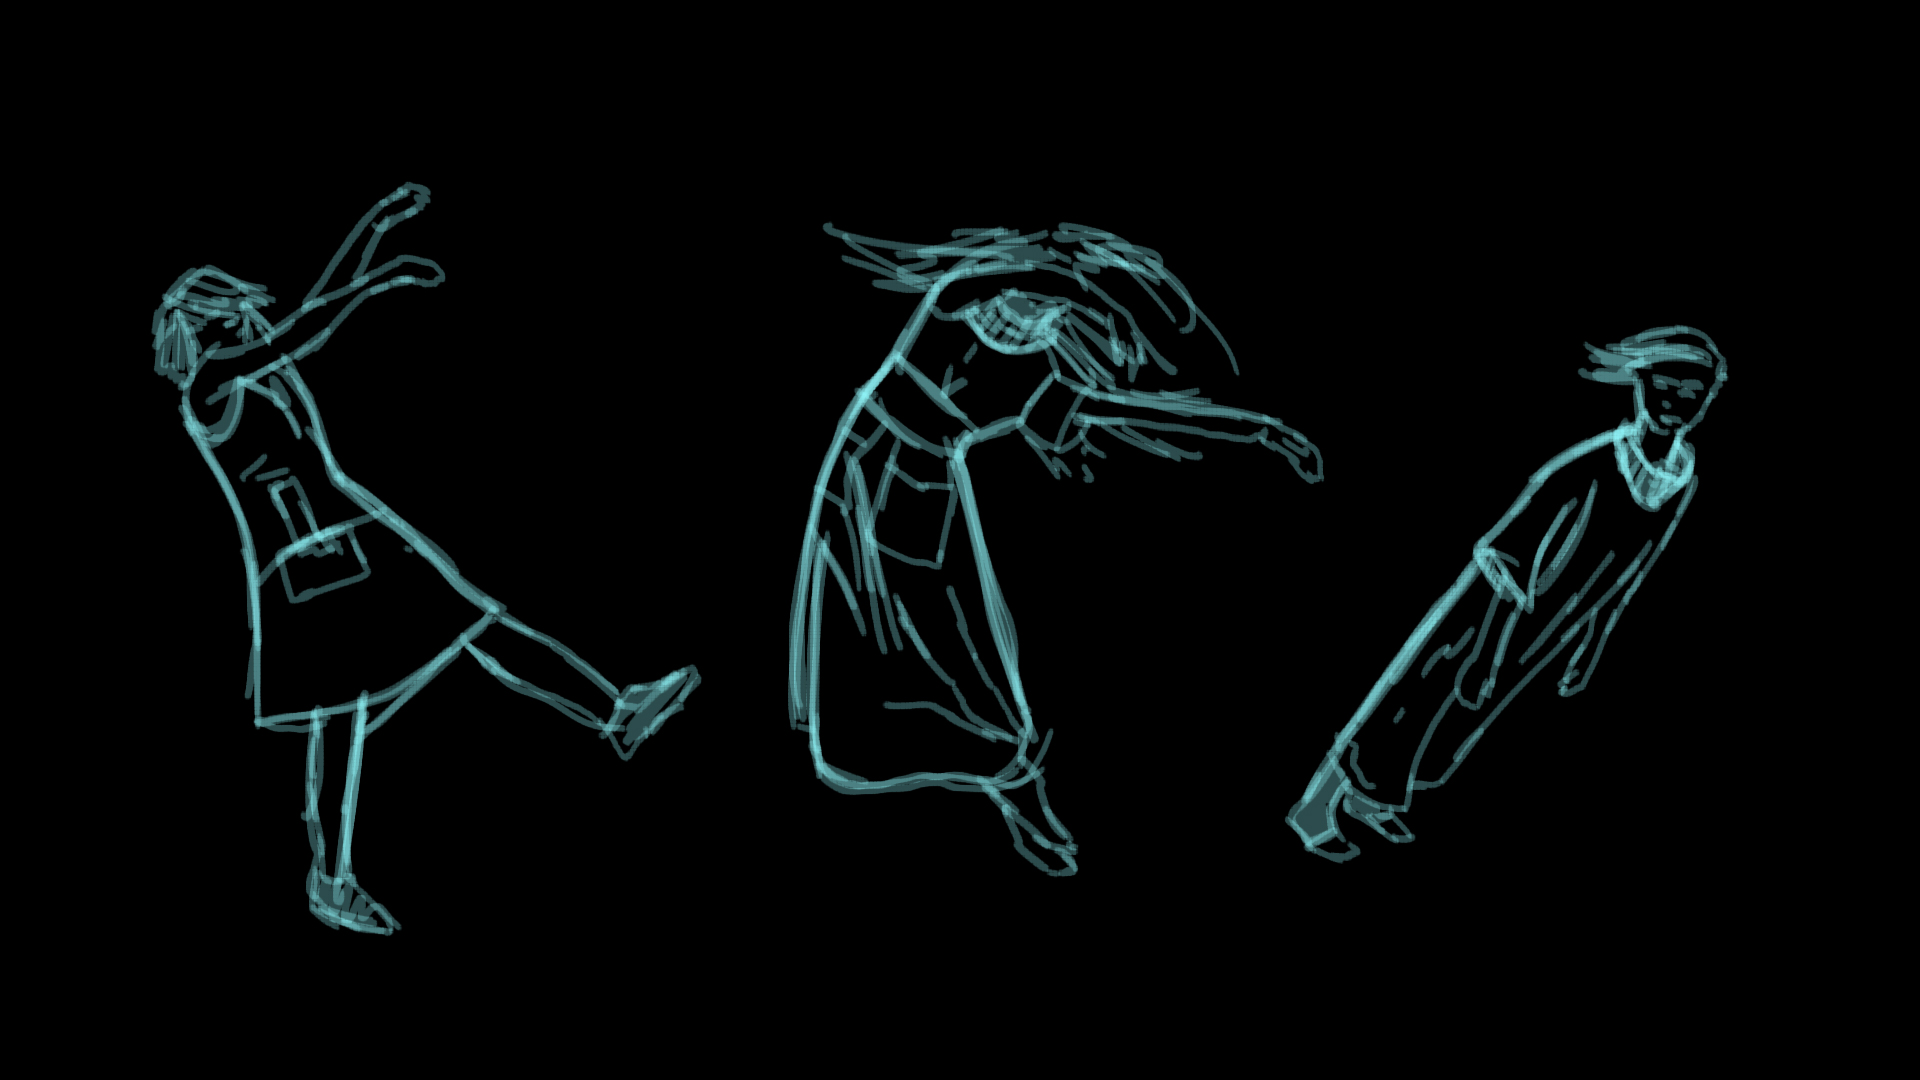 Sketching out the movement and playfulness of our main character.